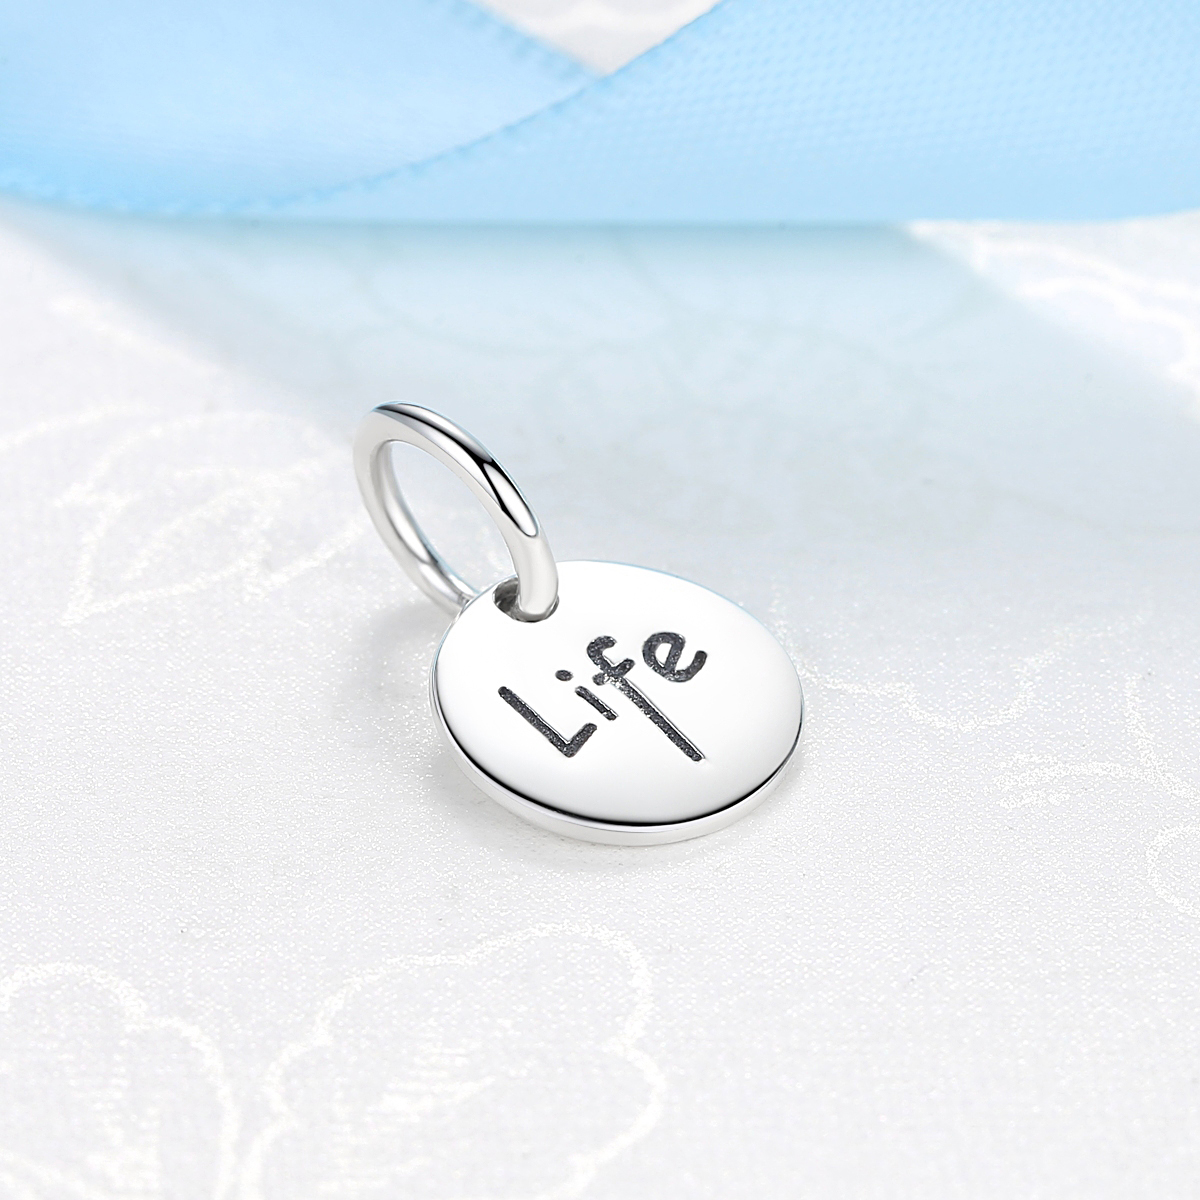 Authentic 925 Sterling Silver Bead Life Familry Friendship Hanging Charm Fit Original Pandora Bracelets DIY Charms Jewelry